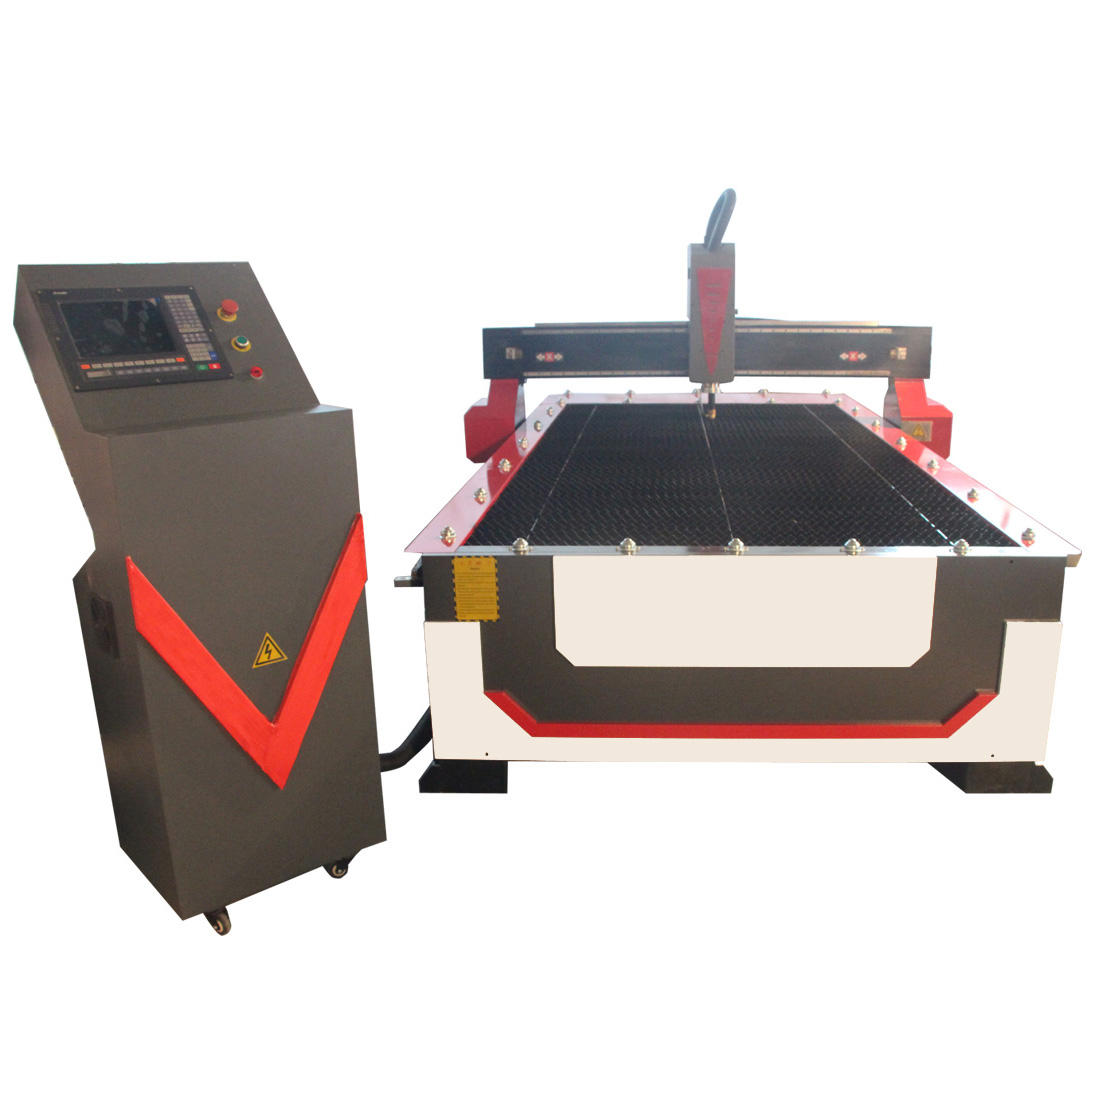 1530 CNC Plasma Cutting Machine Metal Plasma Cutter Cut 20mm 30mm Aluminum Stainless Steel Carbon Sheet